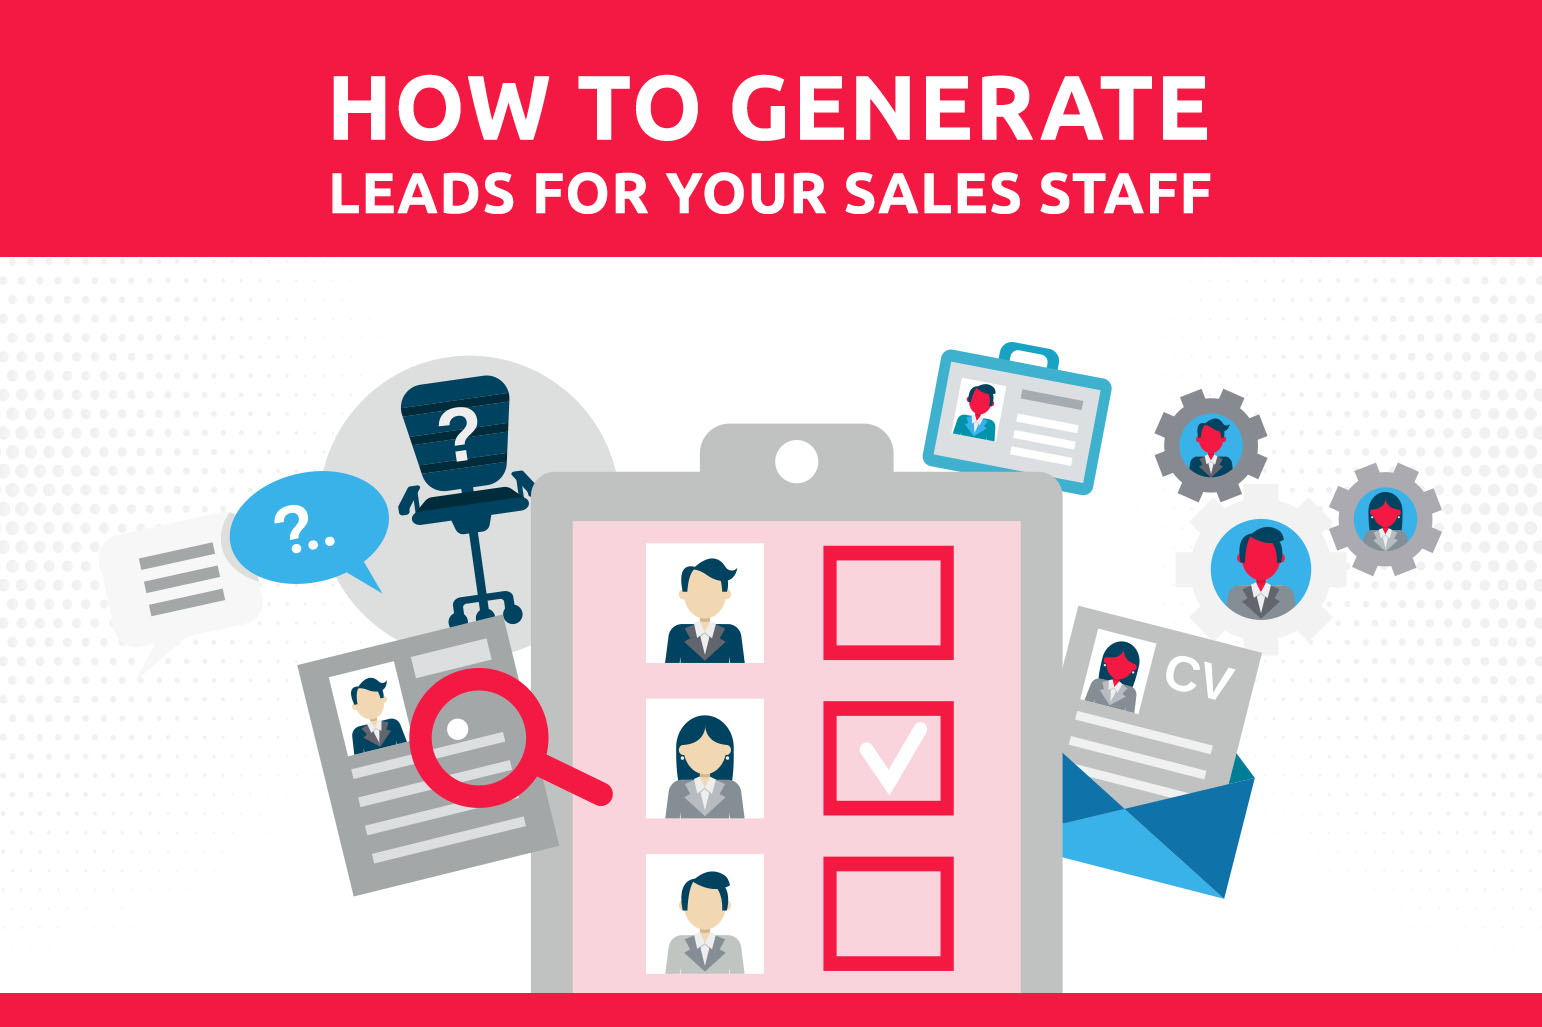 How To Generate Leads For Your Sales Staff